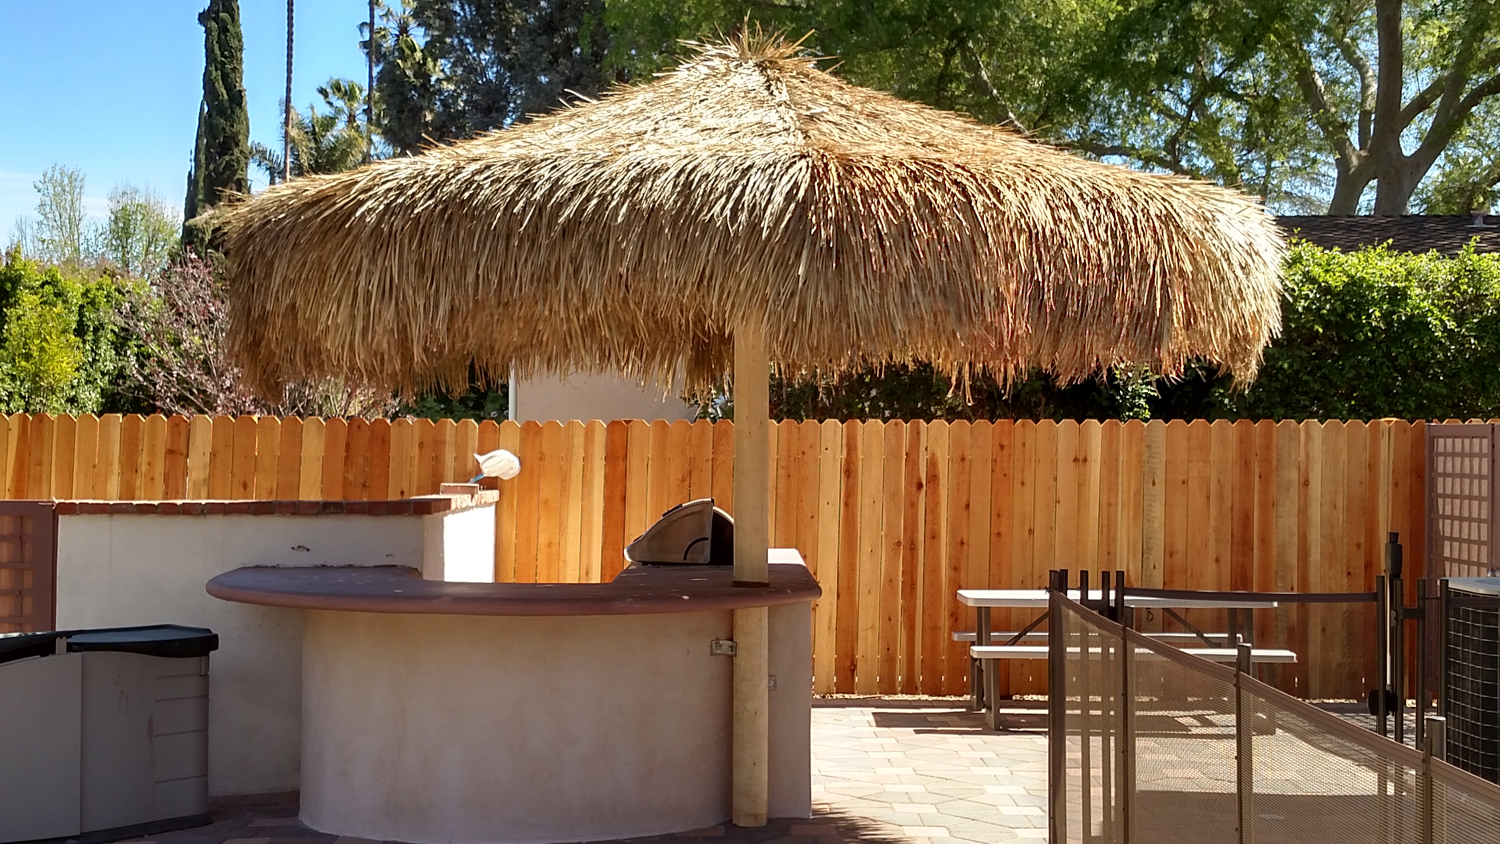 14 Foot Mexican Palm Palapa Round